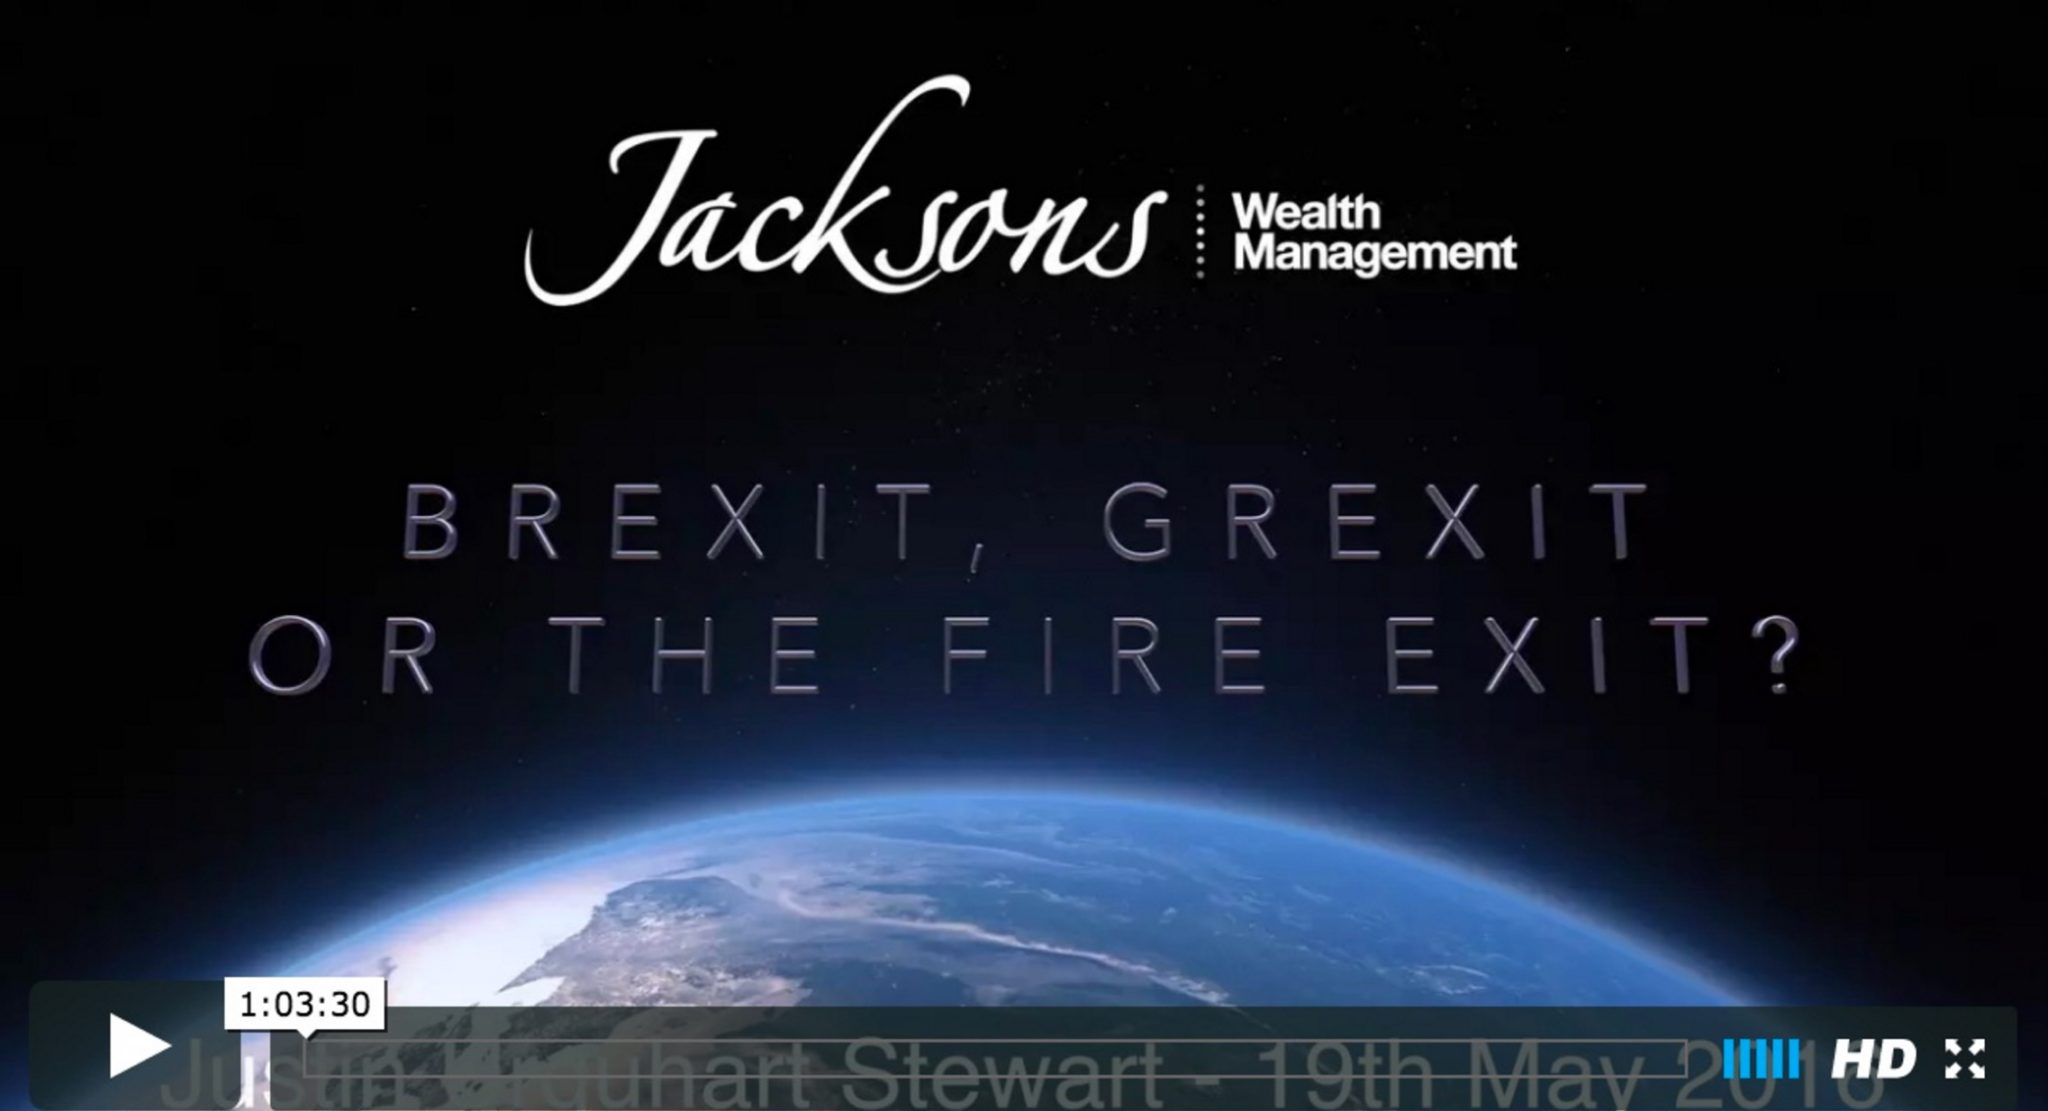 Brexit, Grexit or the Fire Exit